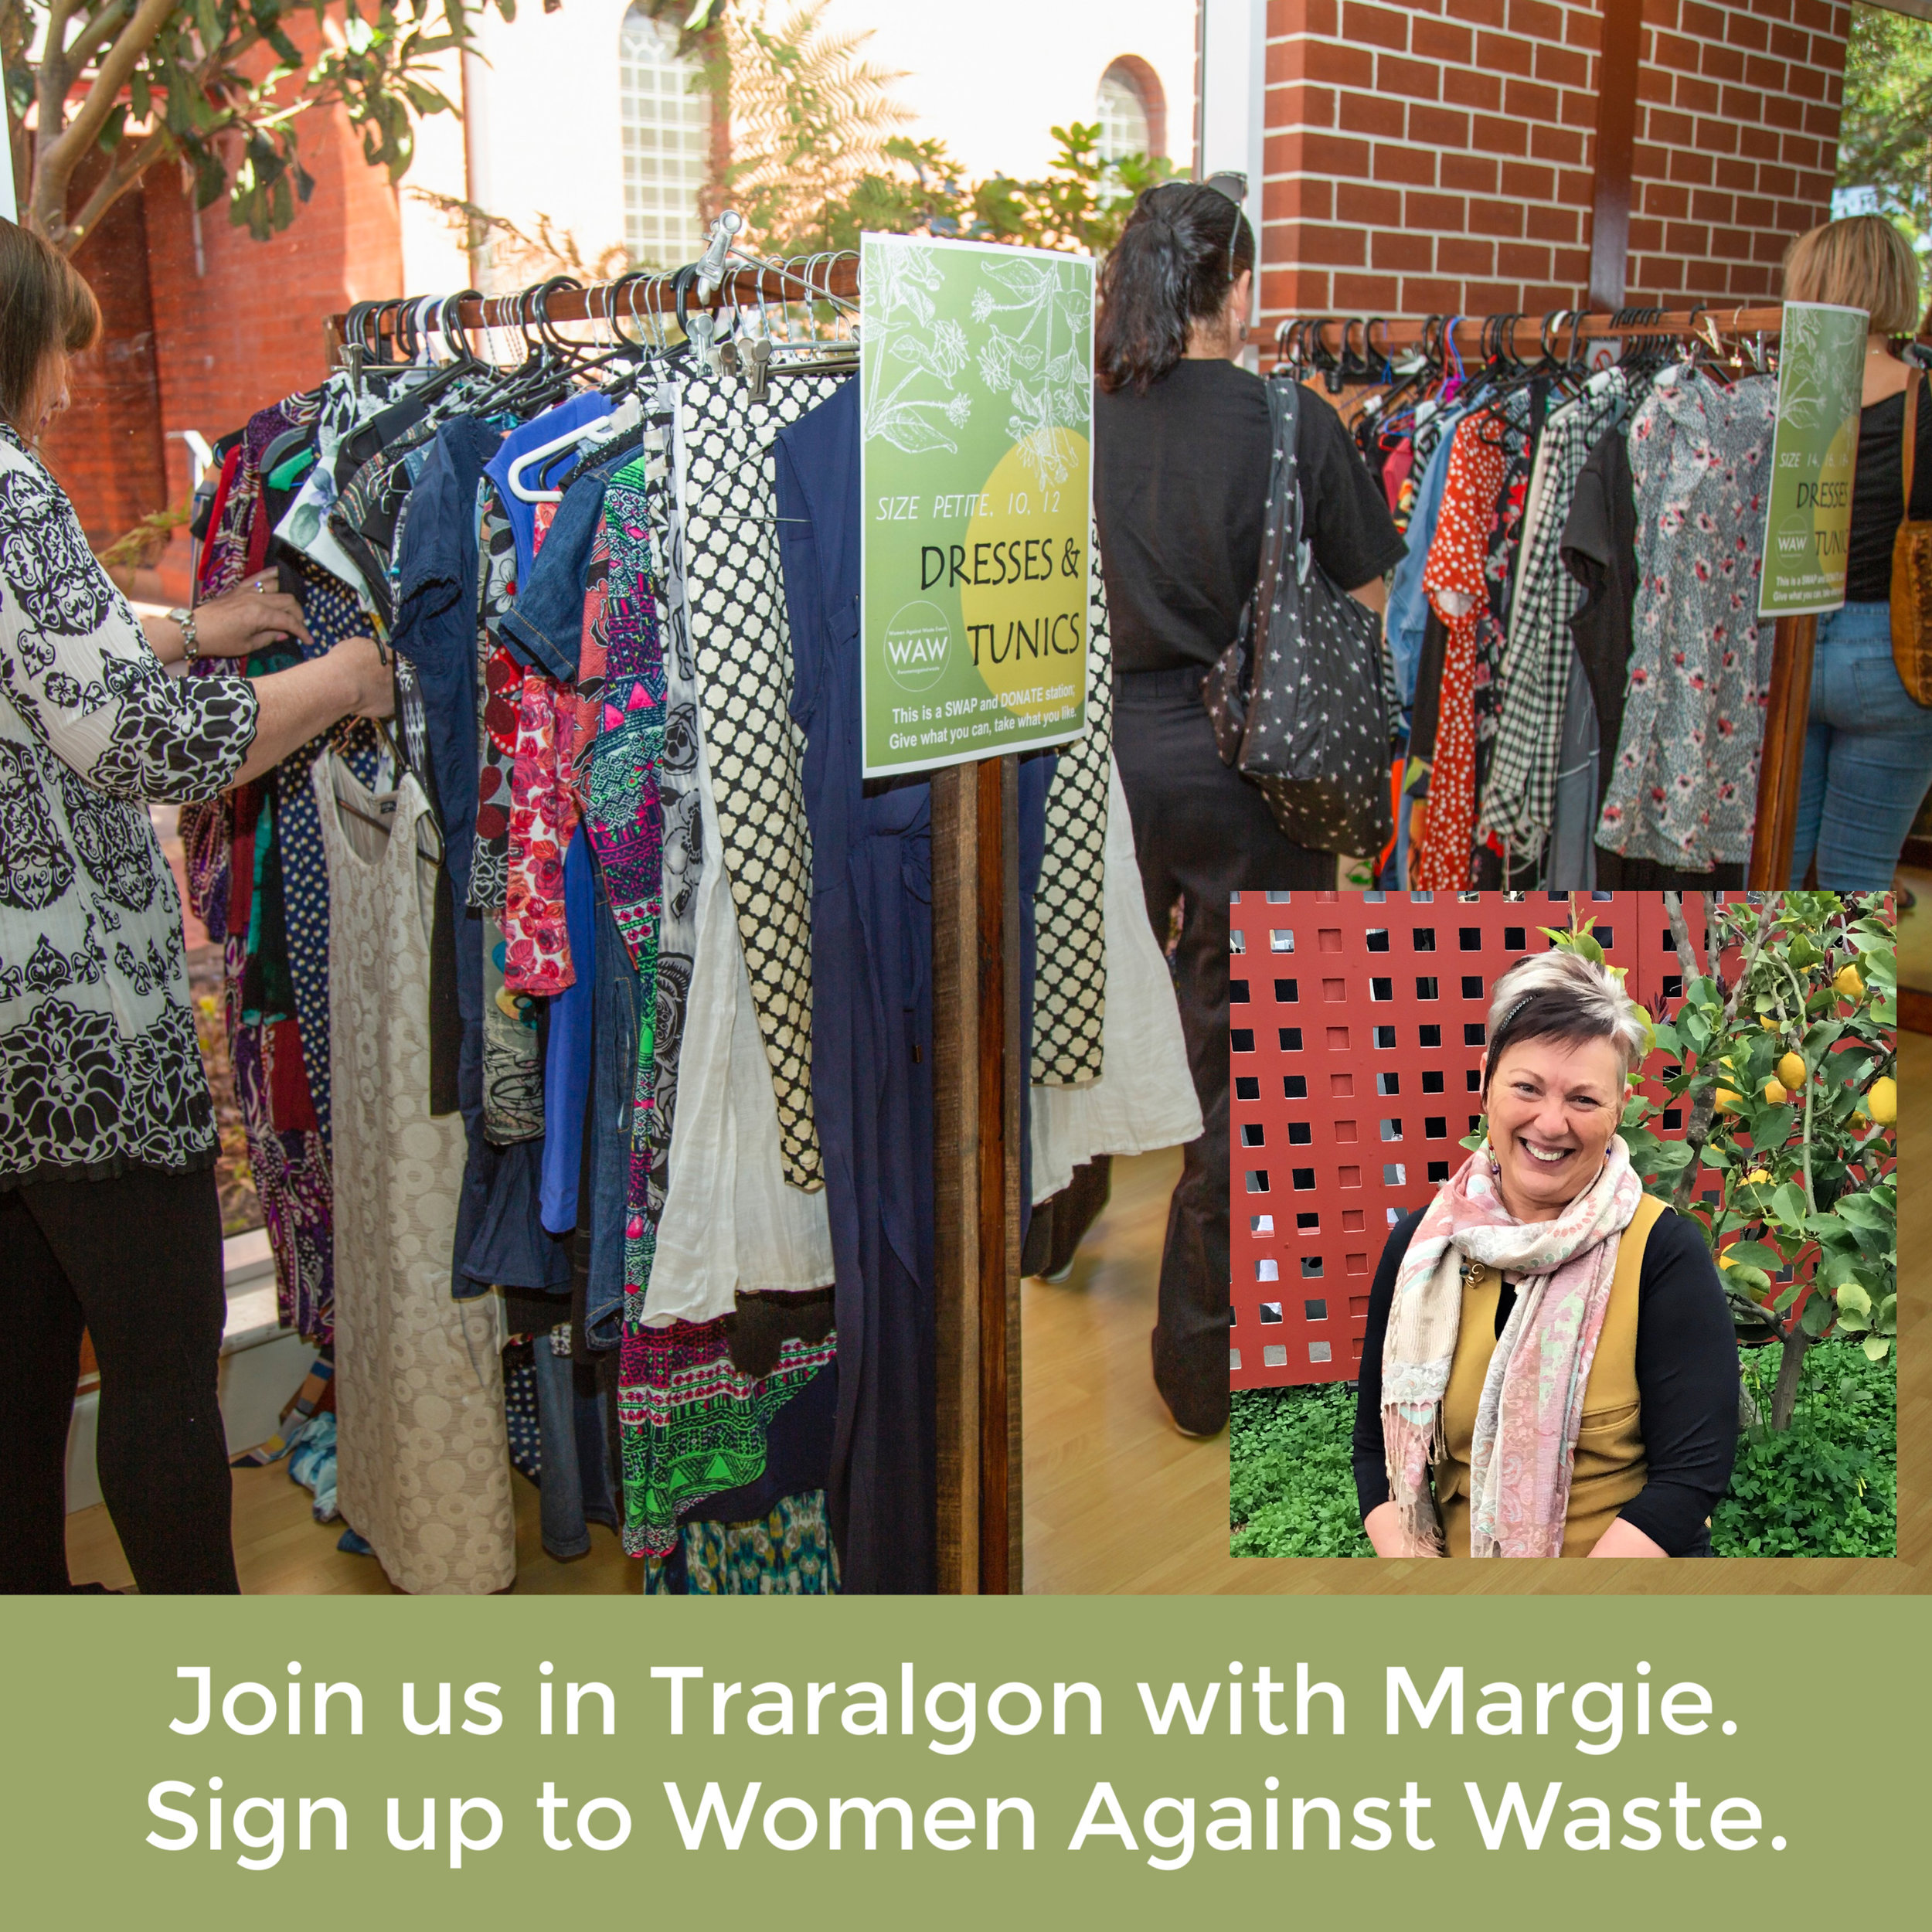 Traralgon Women Against Waste Event.jpg